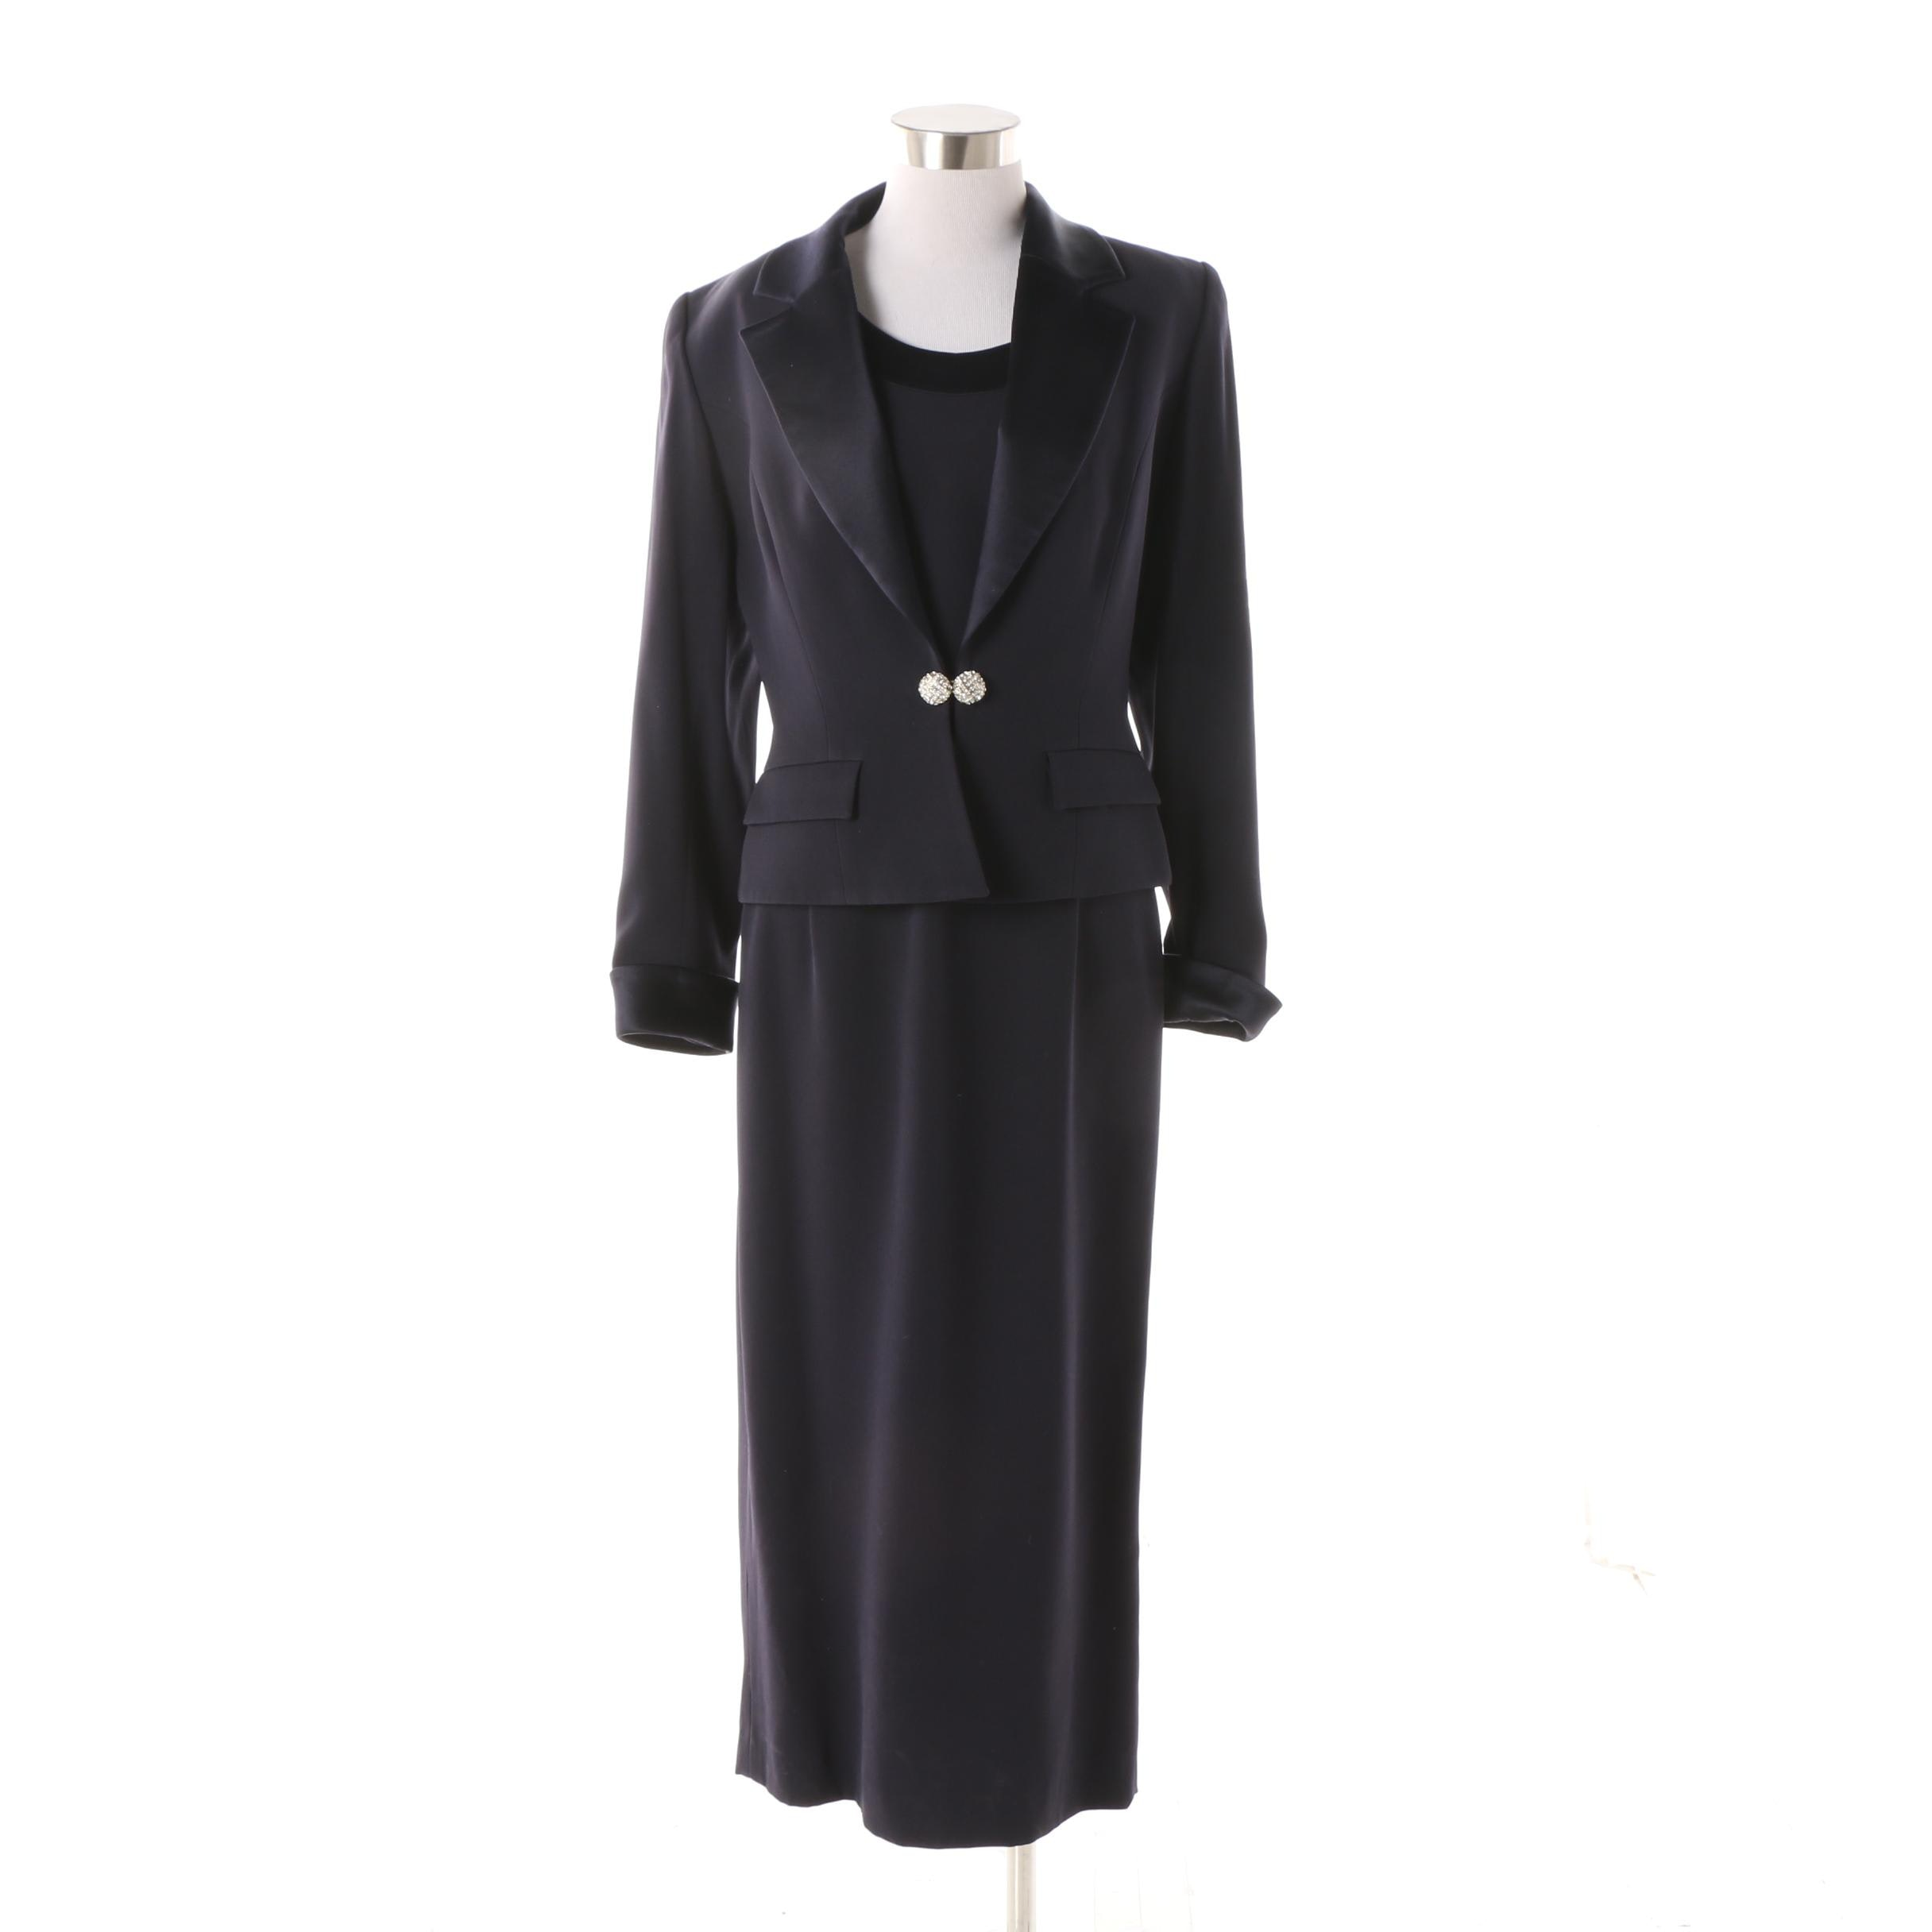 Sunny Choi Midnight Blue Dress Suit with Rhinestone Encrusted Buttons